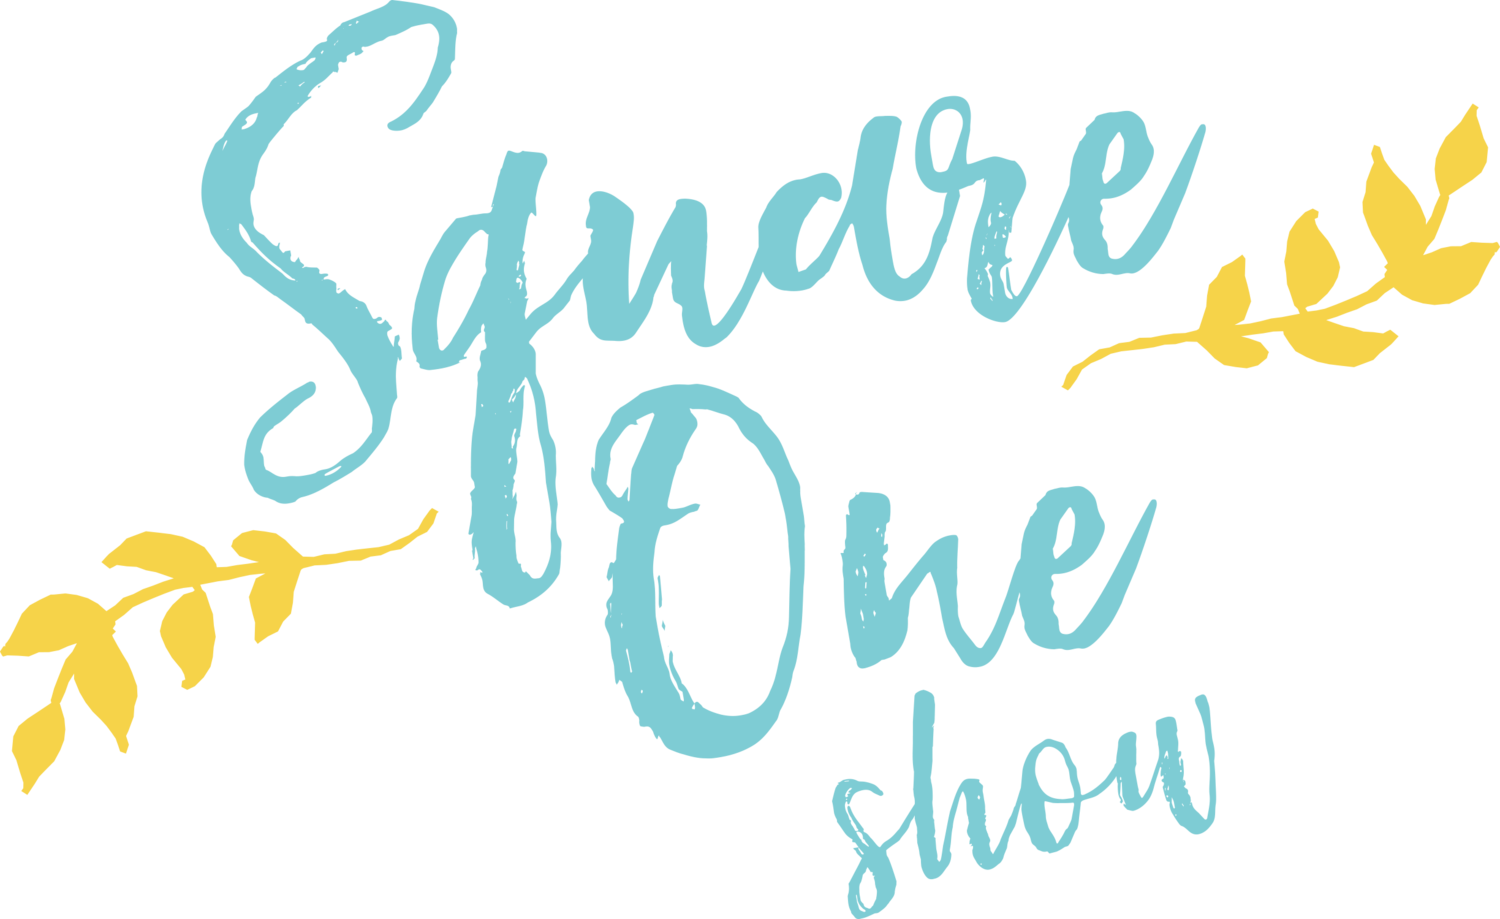 Square One Show